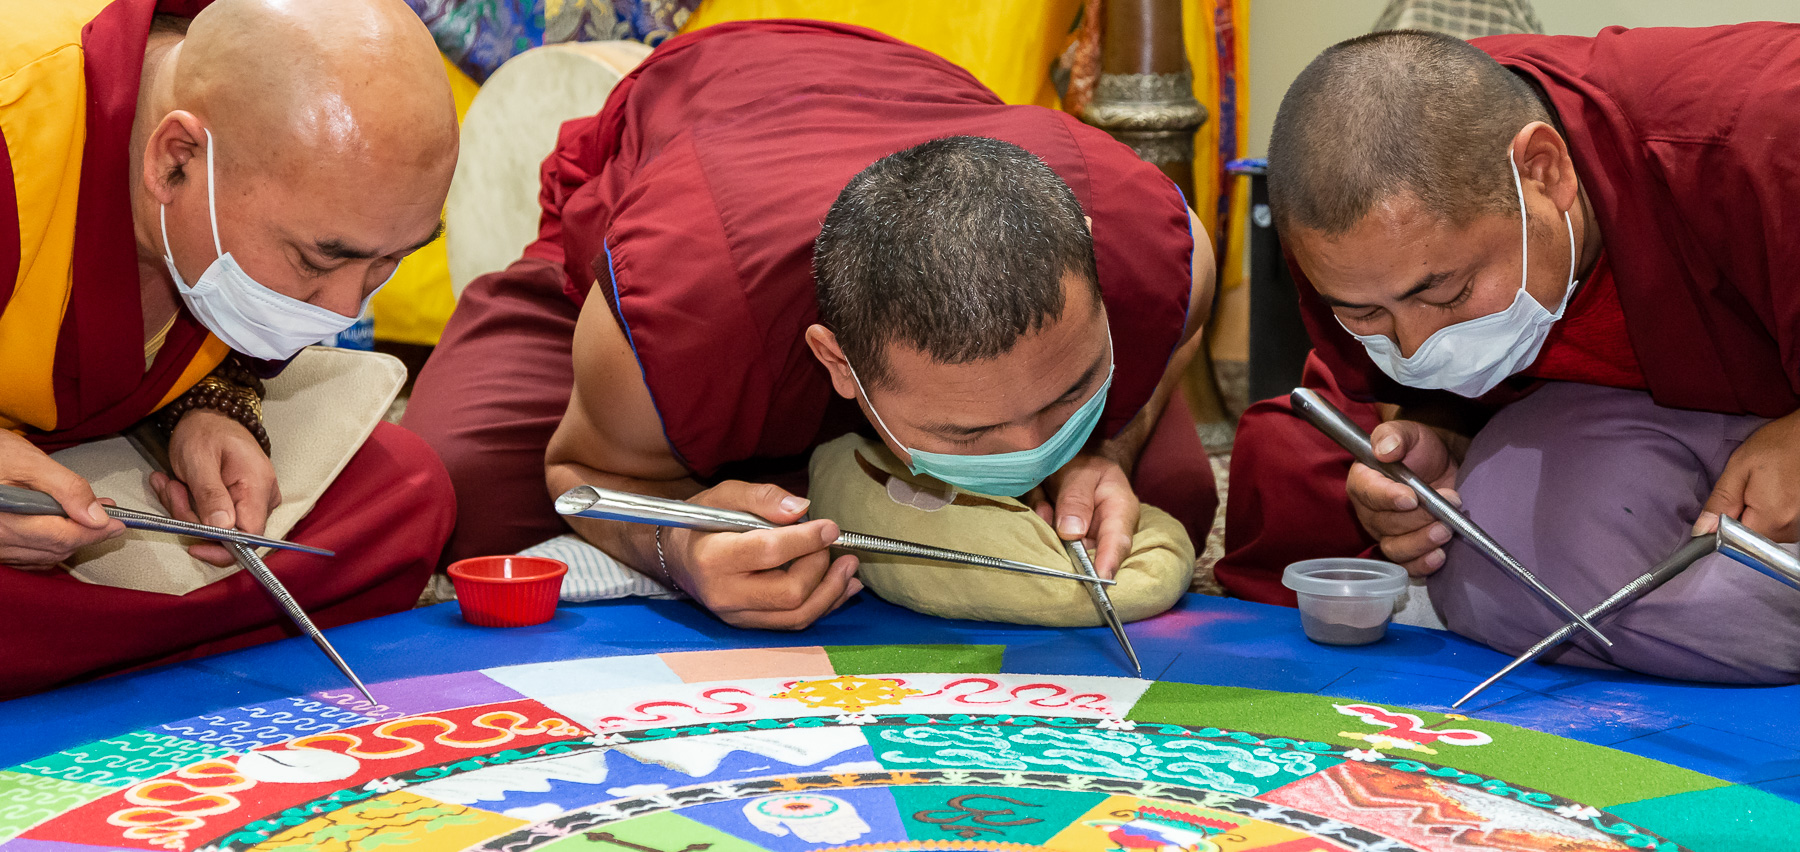 The monks rapidly rub their chak-purs together to deposit sand onto the mandala surface. They also wear masks over their mouths to avoid blowing the sand with their breath. (DePaul University/Jeff Carrion)